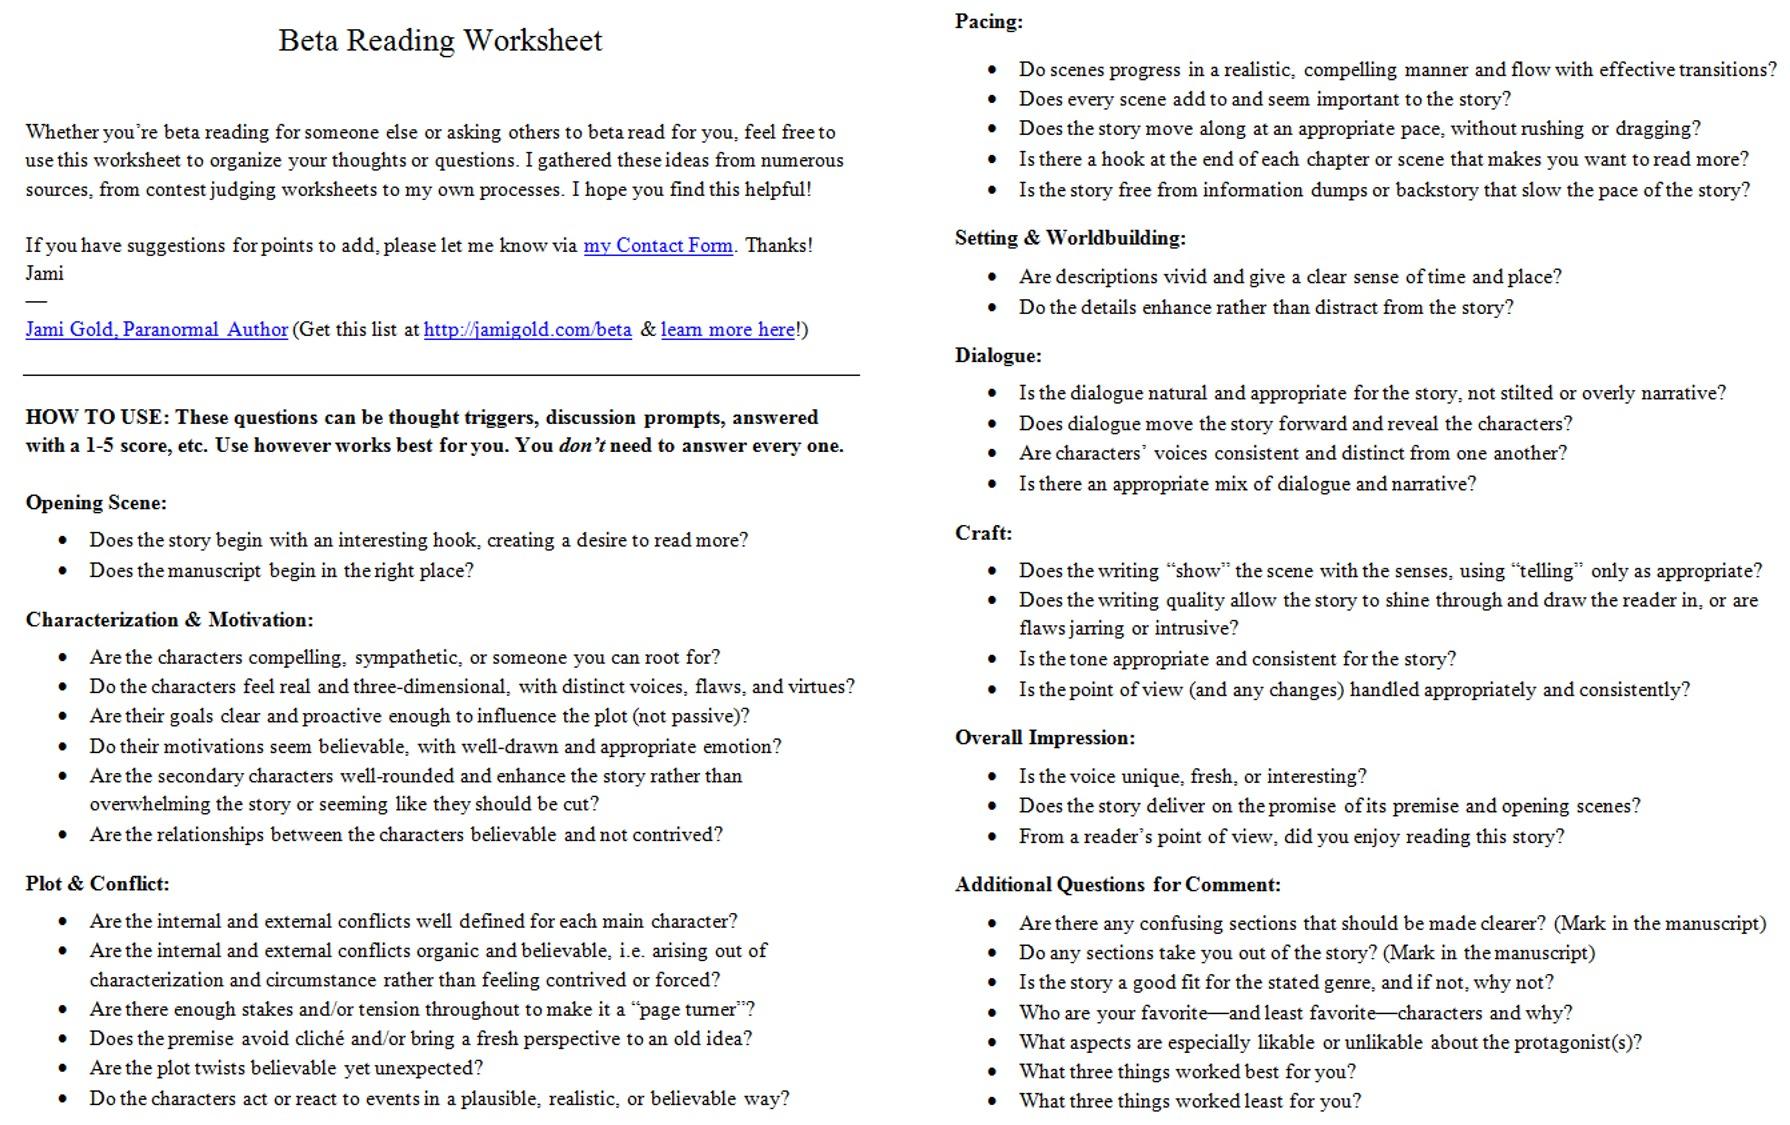 Weirdmailus  Nice Worksheets For Writers  Jami Gold Paranormal Author With Fascinating Screen Shot Of The Twopage Beta Reading Worksheet With Amusing Free Landforms Worksheets Also Finding Missing Angles In A Triangle Worksheet In Addition How A Plant Grows Worksheet And Numbers Matching Worksheet As Well As Acute Obtuse Reflex Angles Worksheet Additionally Creating Writing Worksheets From Jamigoldcom With Weirdmailus  Fascinating Worksheets For Writers  Jami Gold Paranormal Author With Amusing Screen Shot Of The Twopage Beta Reading Worksheet And Nice Free Landforms Worksheets Also Finding Missing Angles In A Triangle Worksheet In Addition How A Plant Grows Worksheet From Jamigoldcom